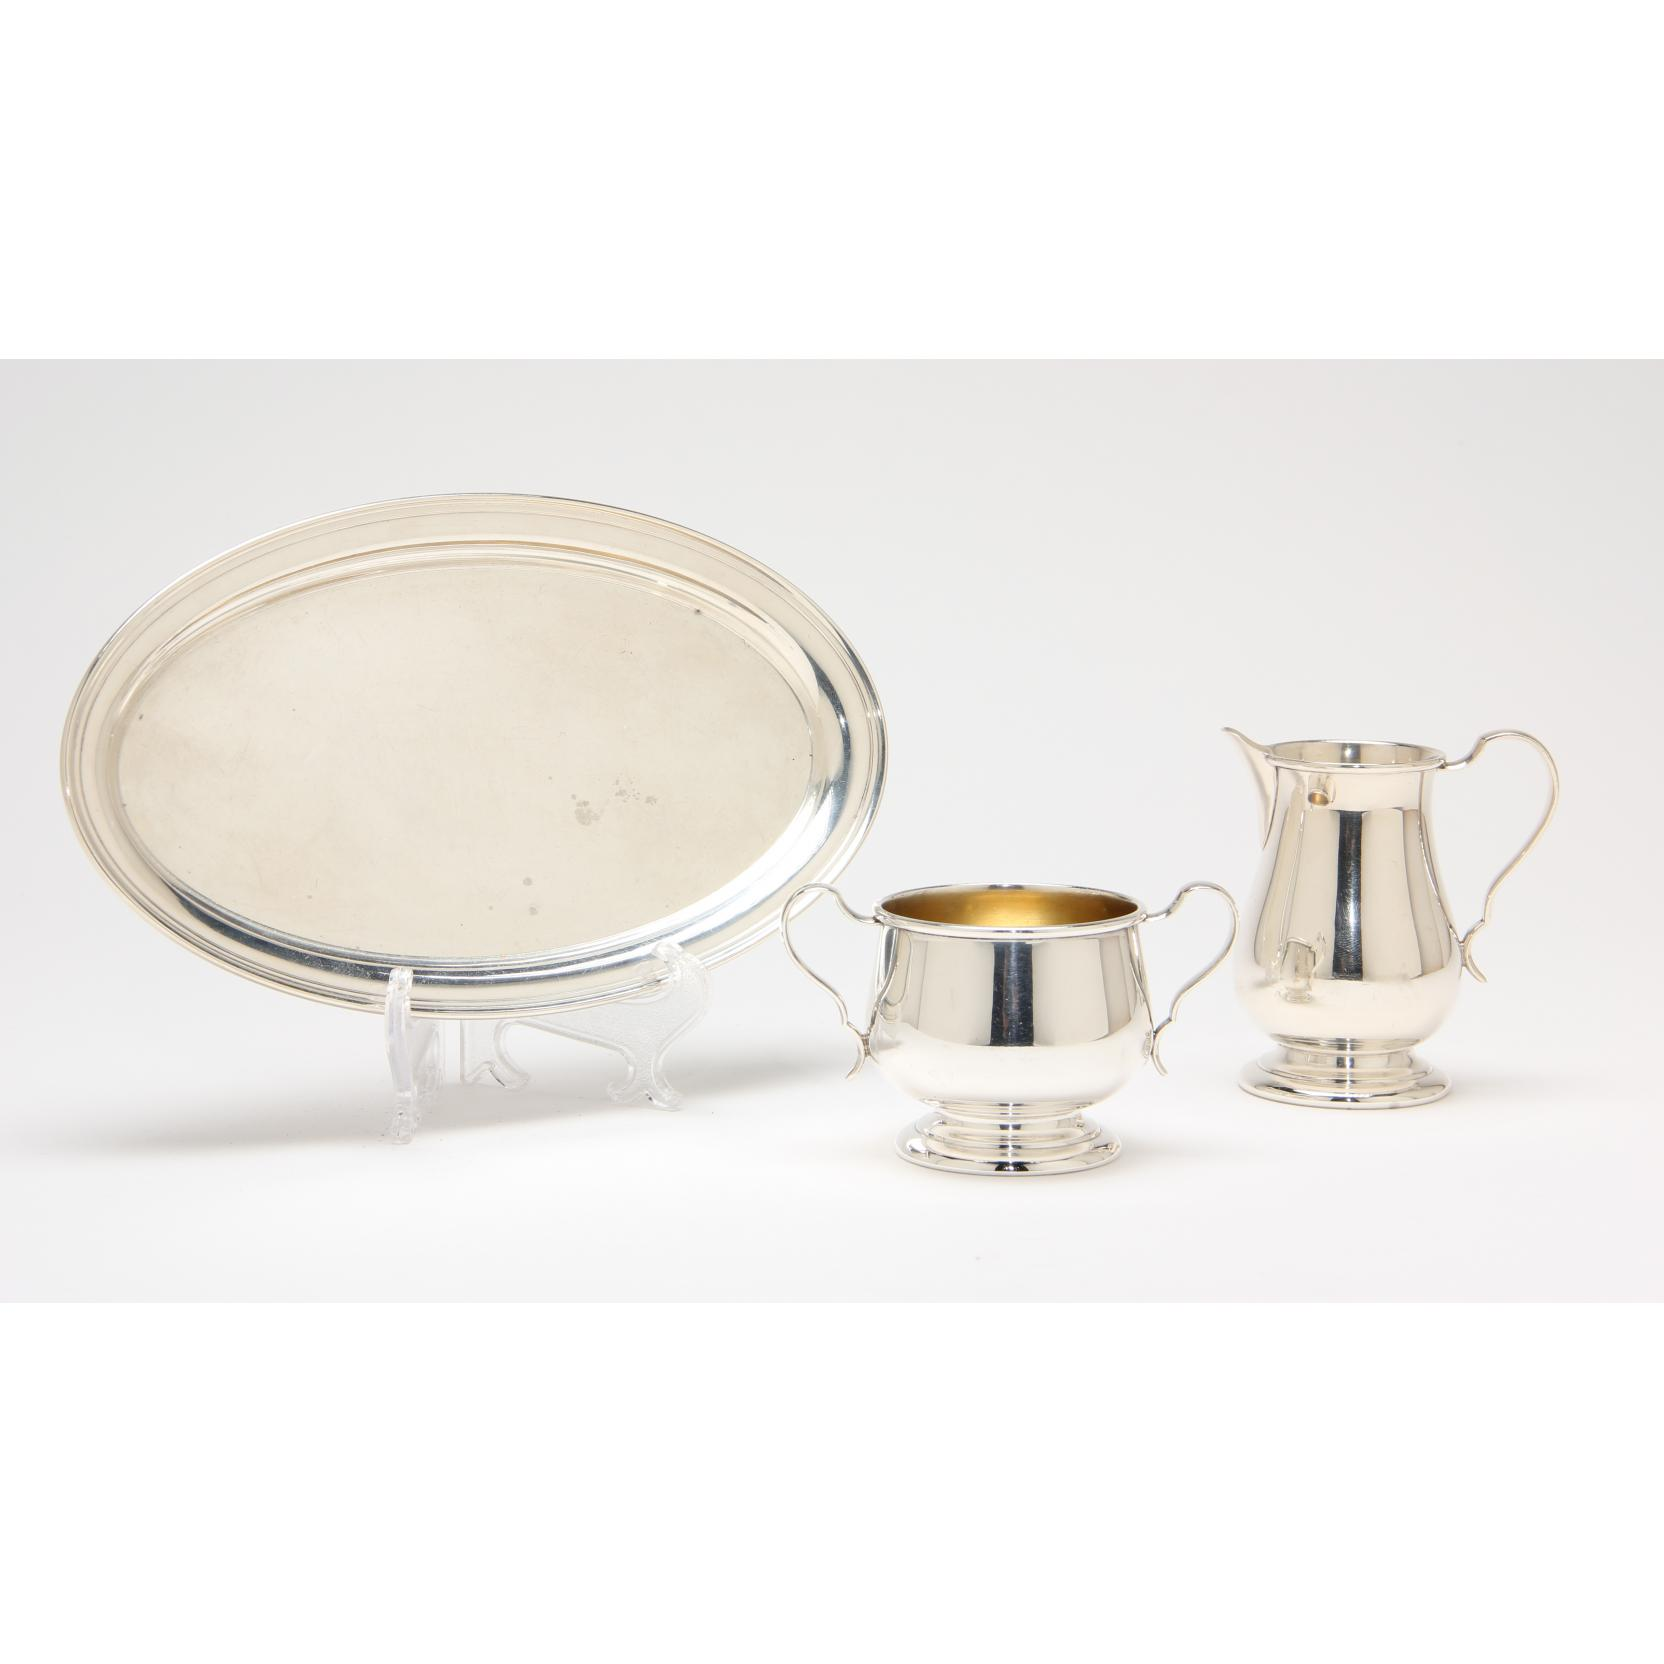 sterling-silver-creamer-sugar-set-with-tray